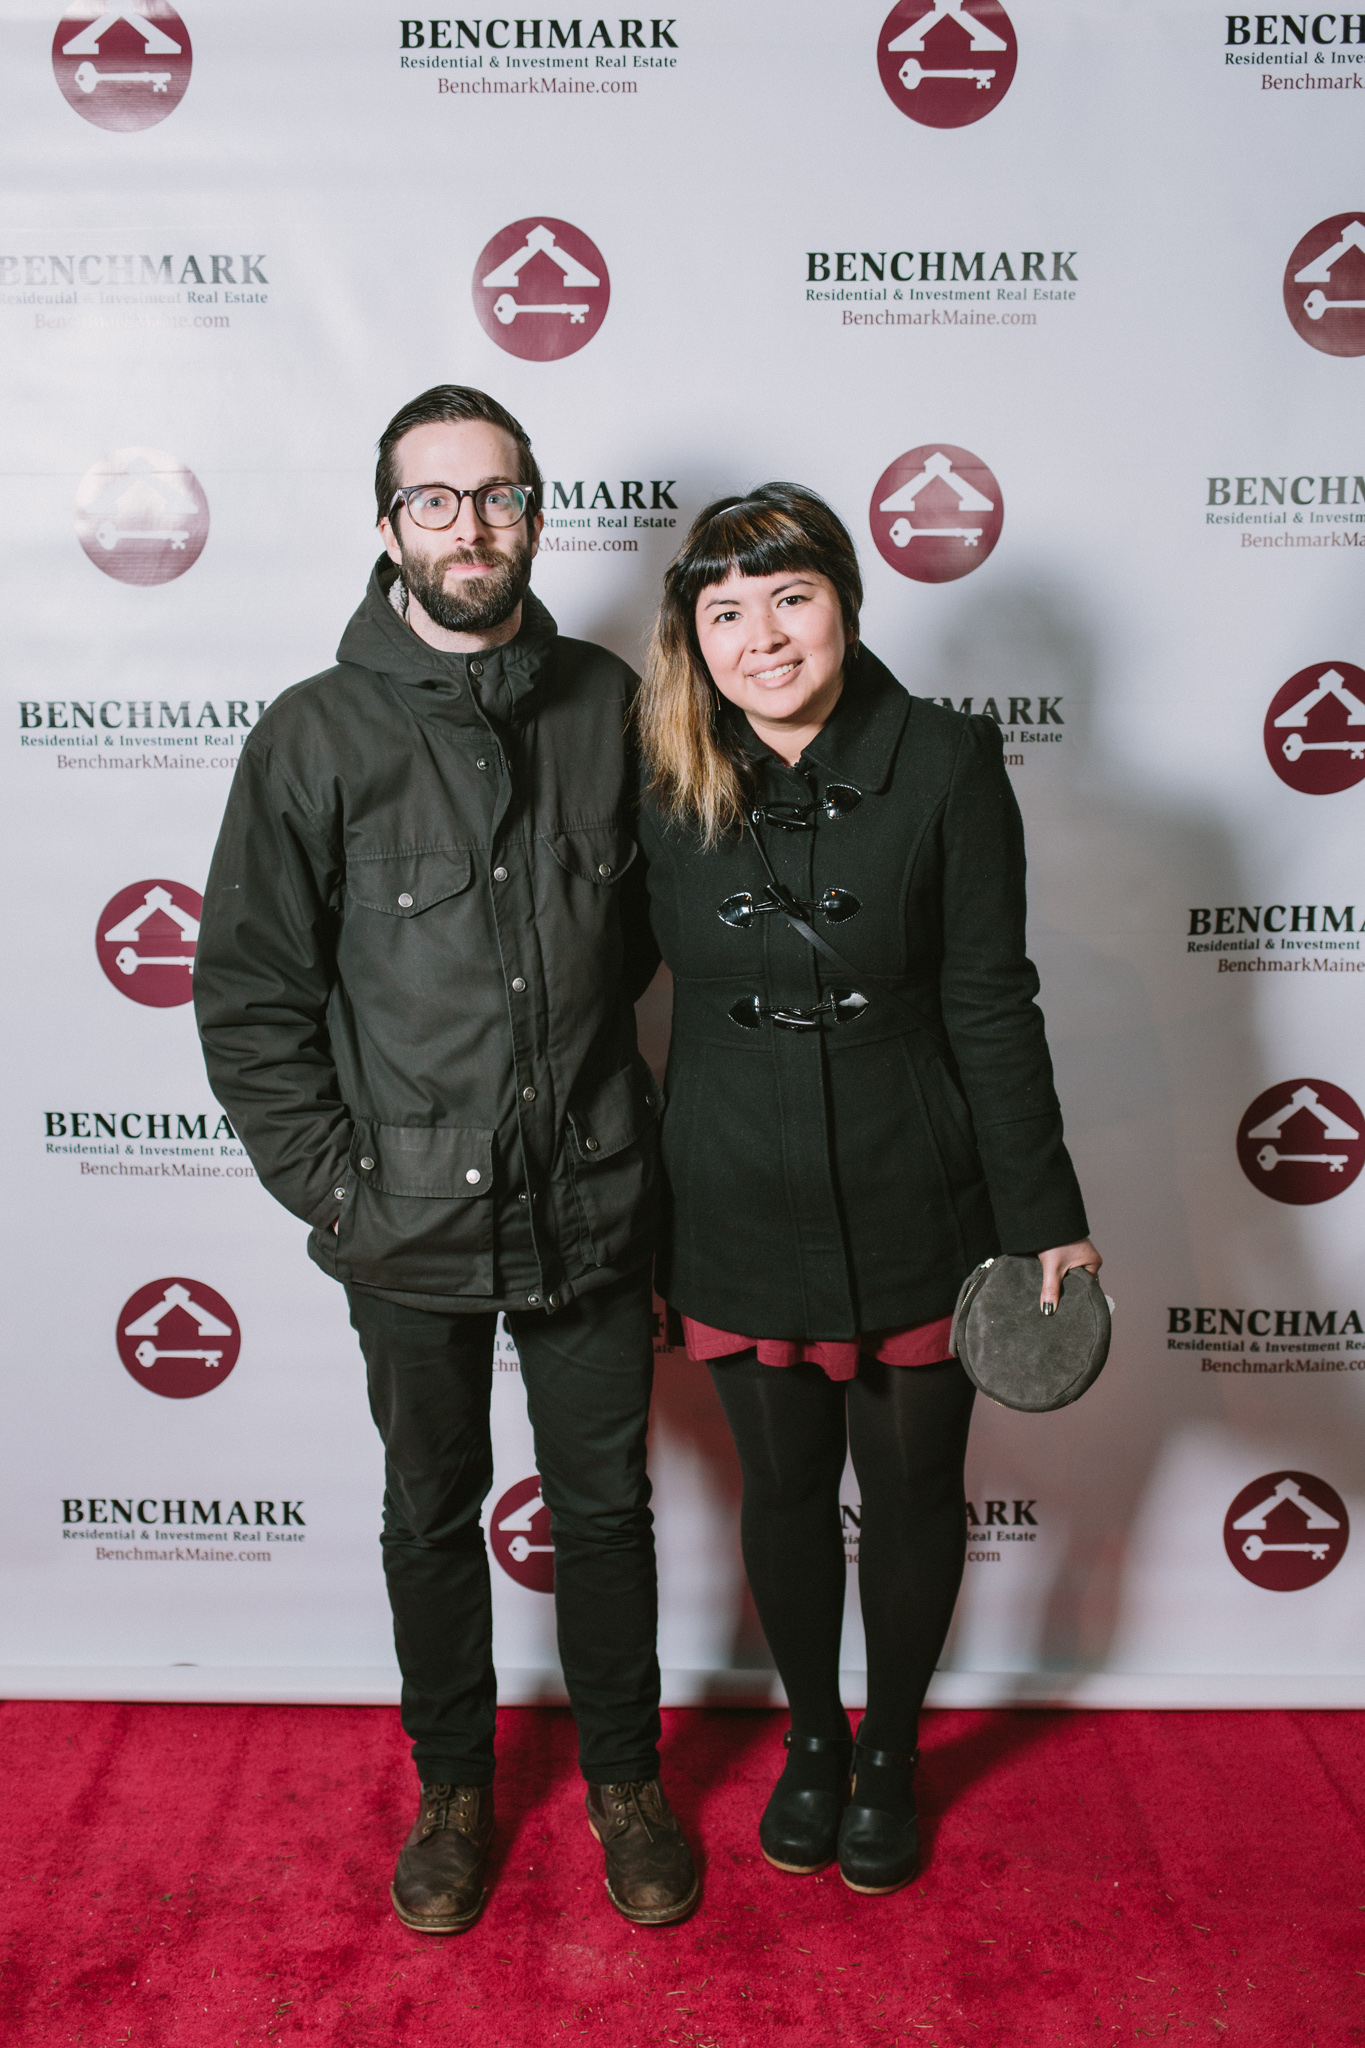 Benchmark_Holiday_Party_SR-021.jpg